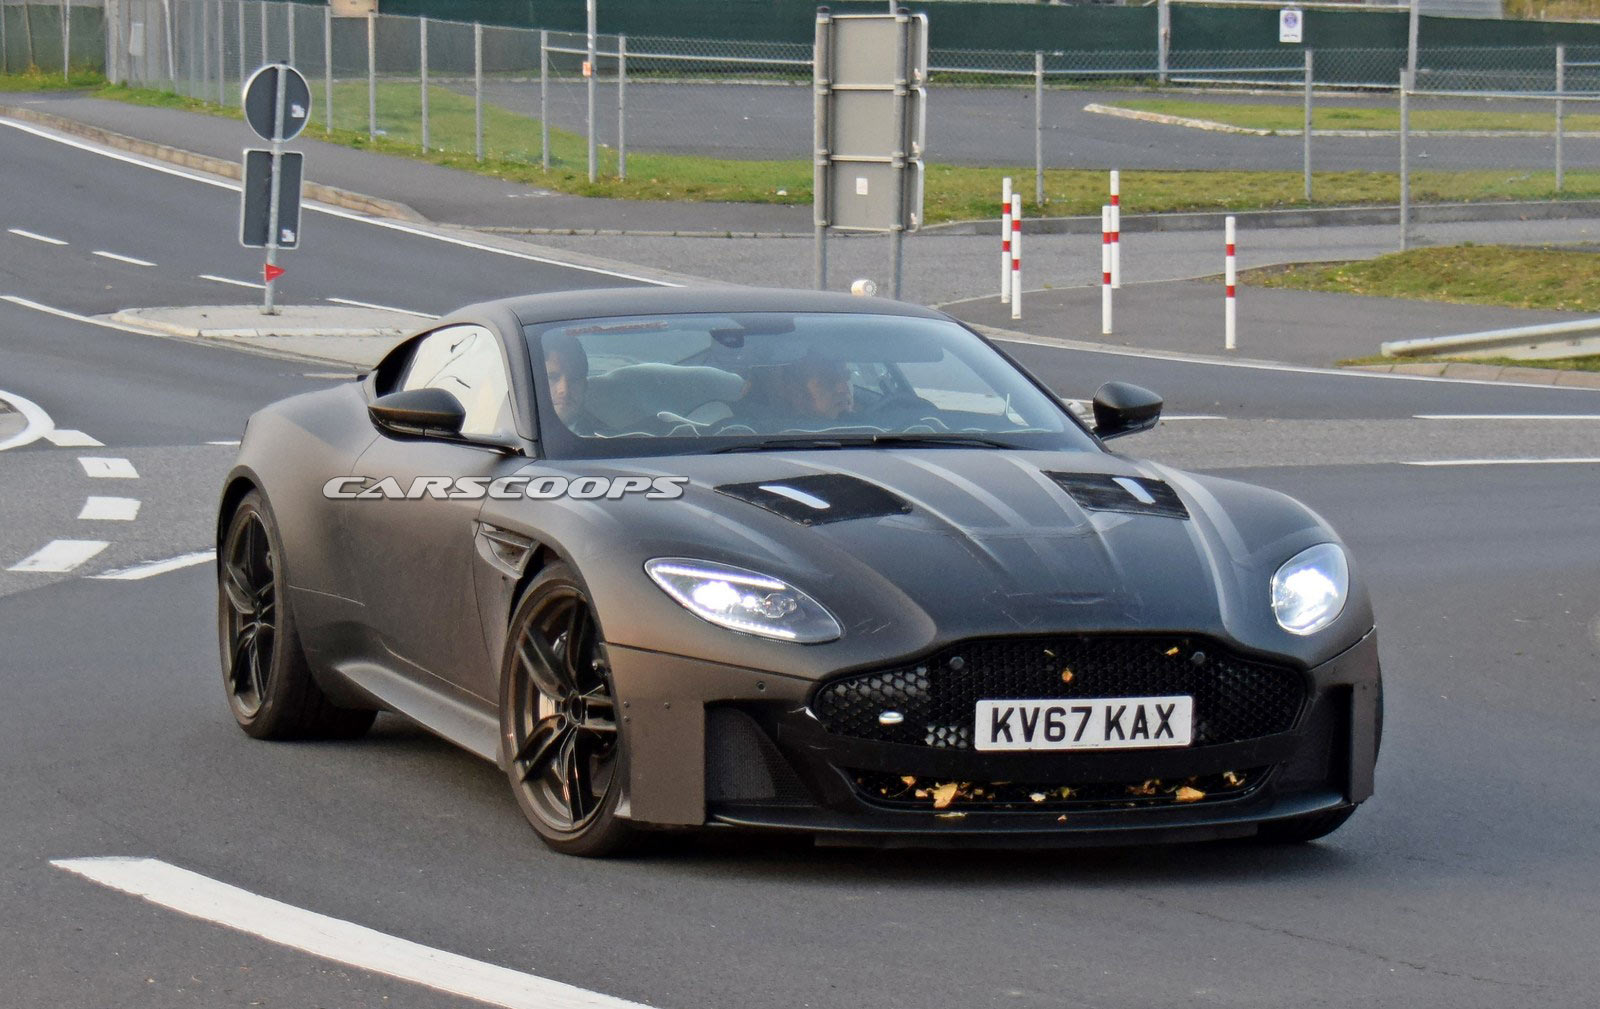 aston martin 39 s next vanquish to rival ferrari 812. Black Bedroom Furniture Sets. Home Design Ideas